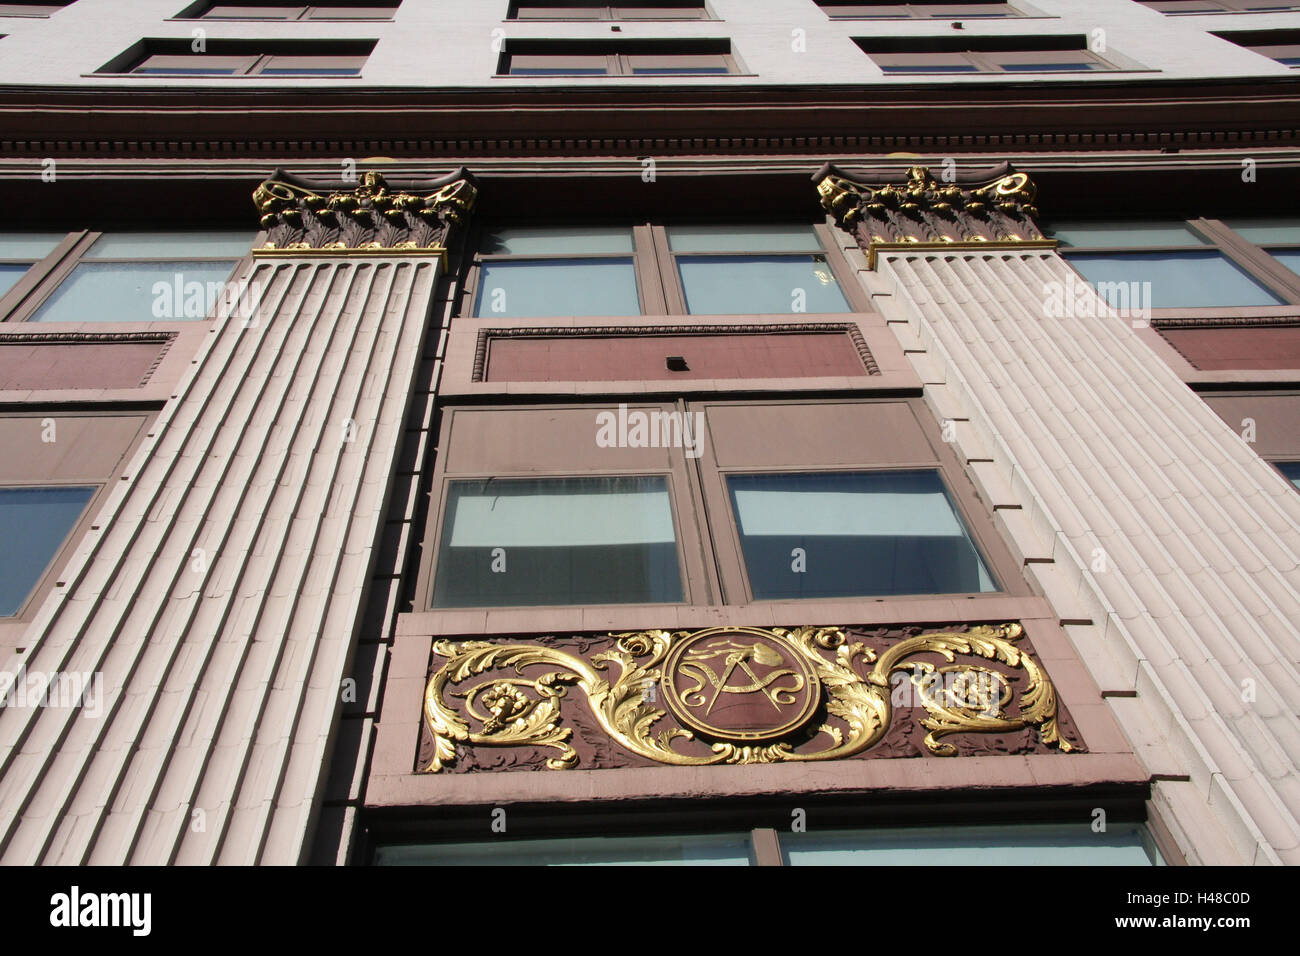 USA, New York City, Manhattan, 7Th Avenue, Art Deco Haus, Fassade, Detail,  Perspektive, Nordamerika, Stadt, Ort Von Interesse, Reiseziel, Architektur,  Haus, ...